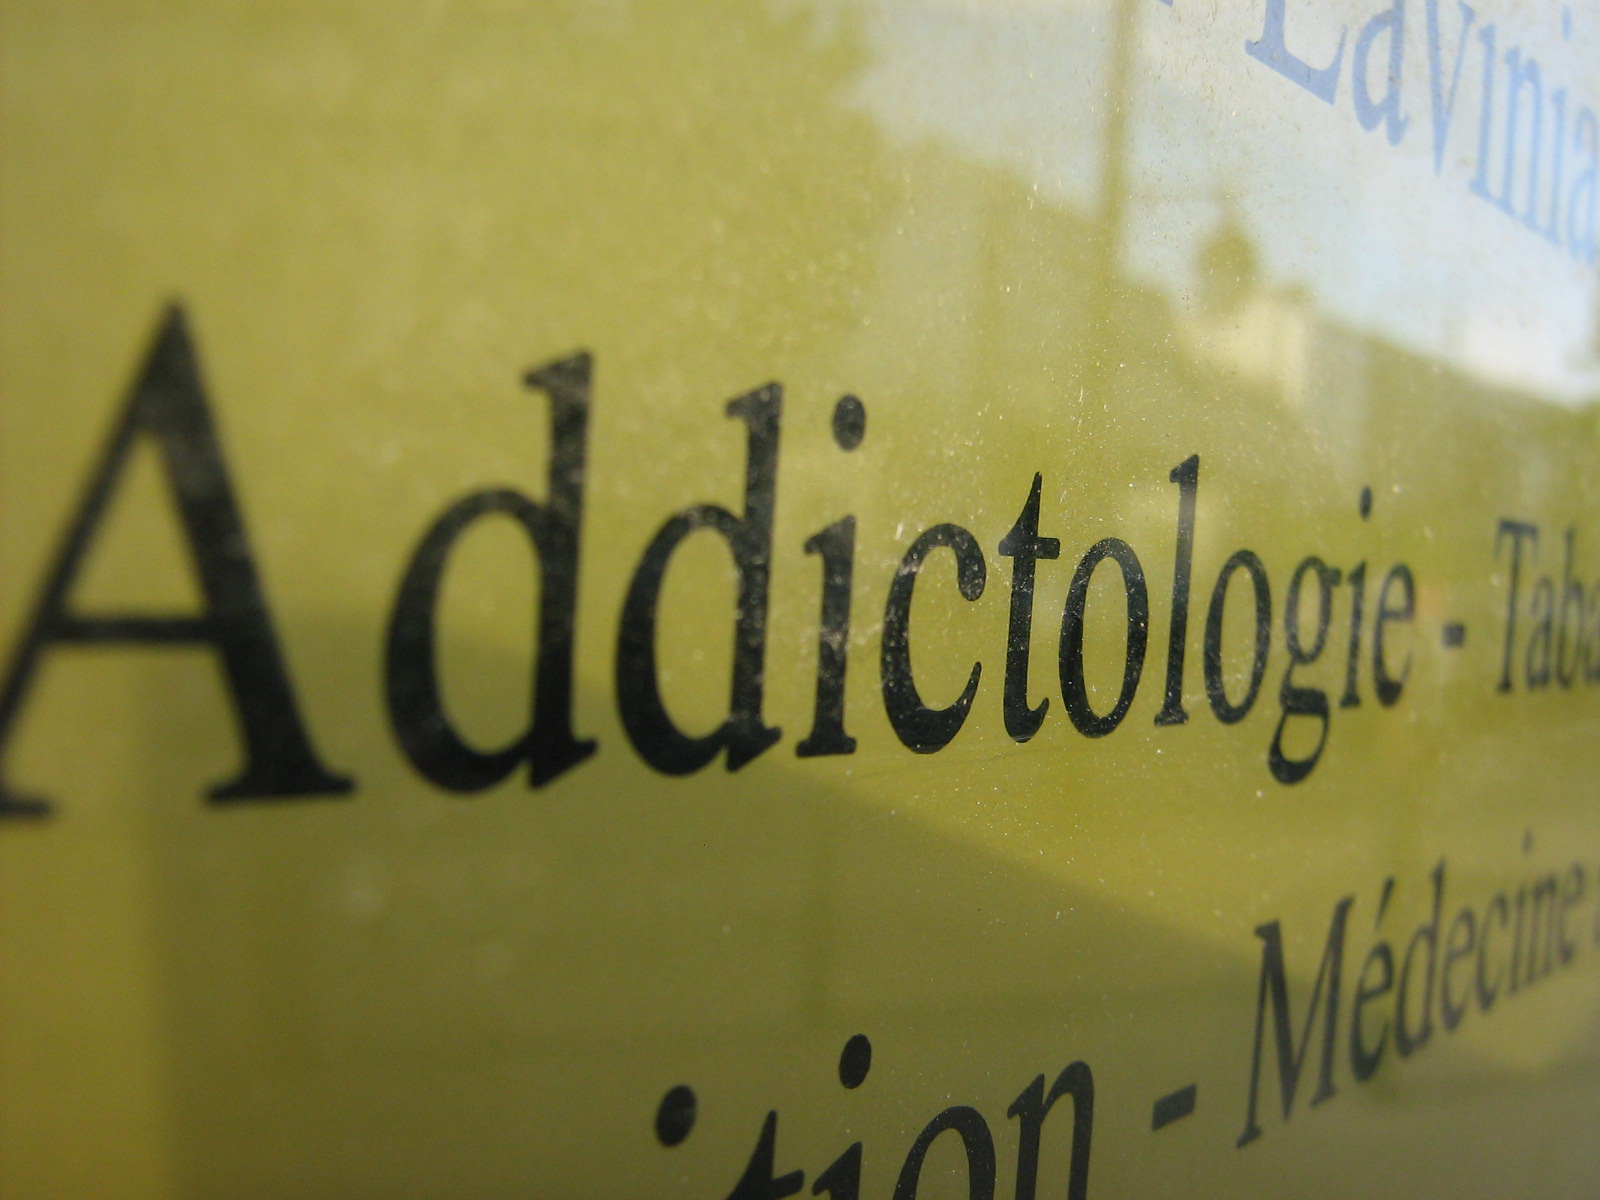 Addictologue